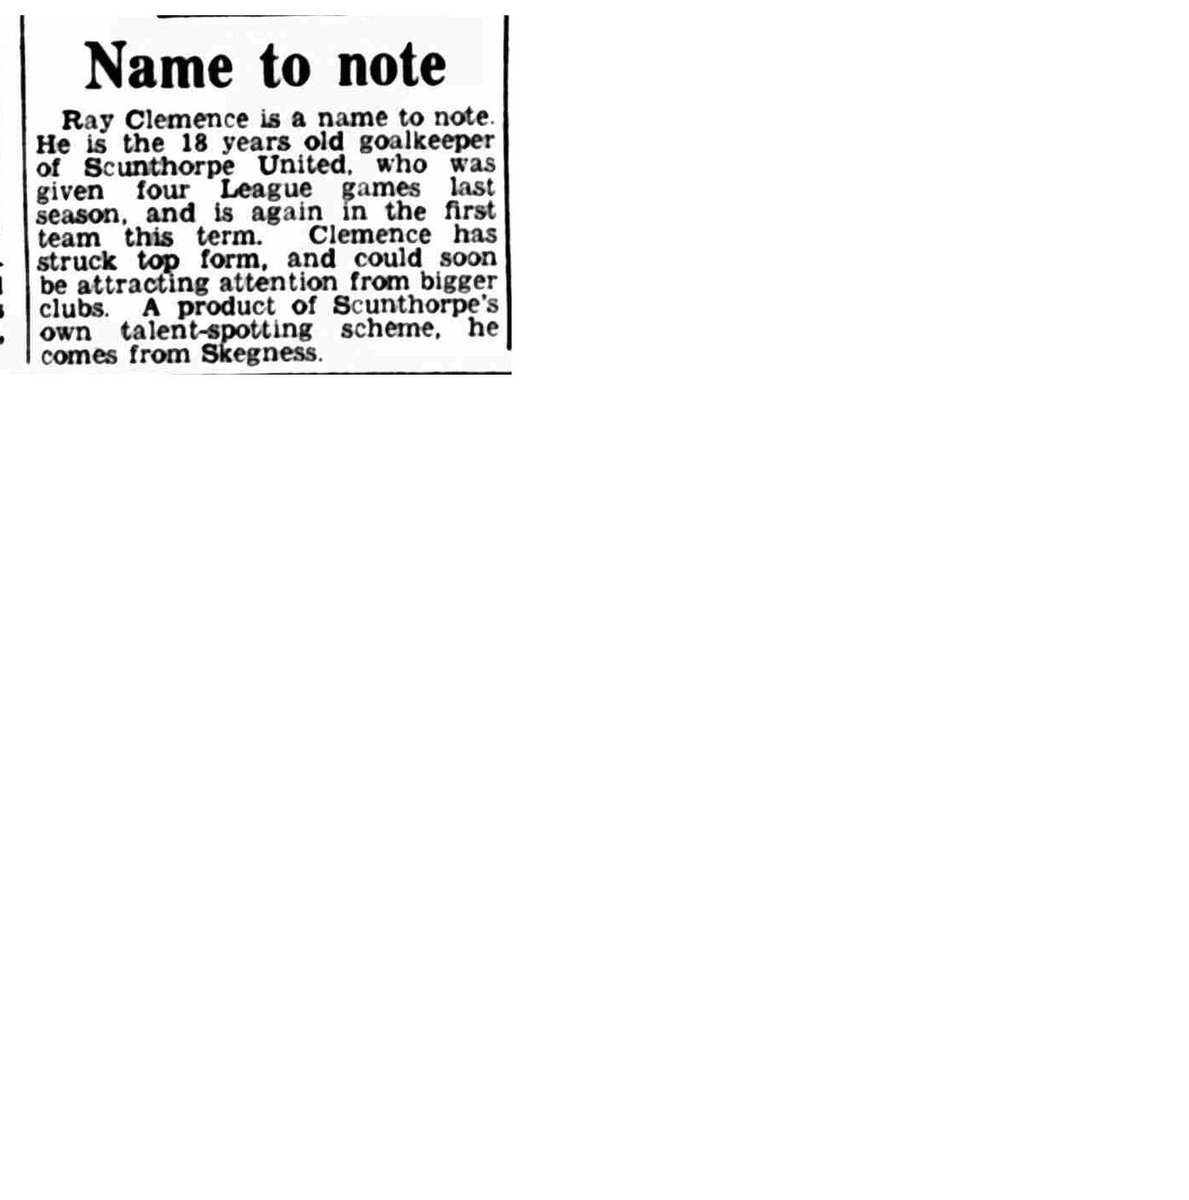 A report on a promising young goalkeeper @RayClem1 from The Coventry Evening Telegraph, 15th October, 1966.